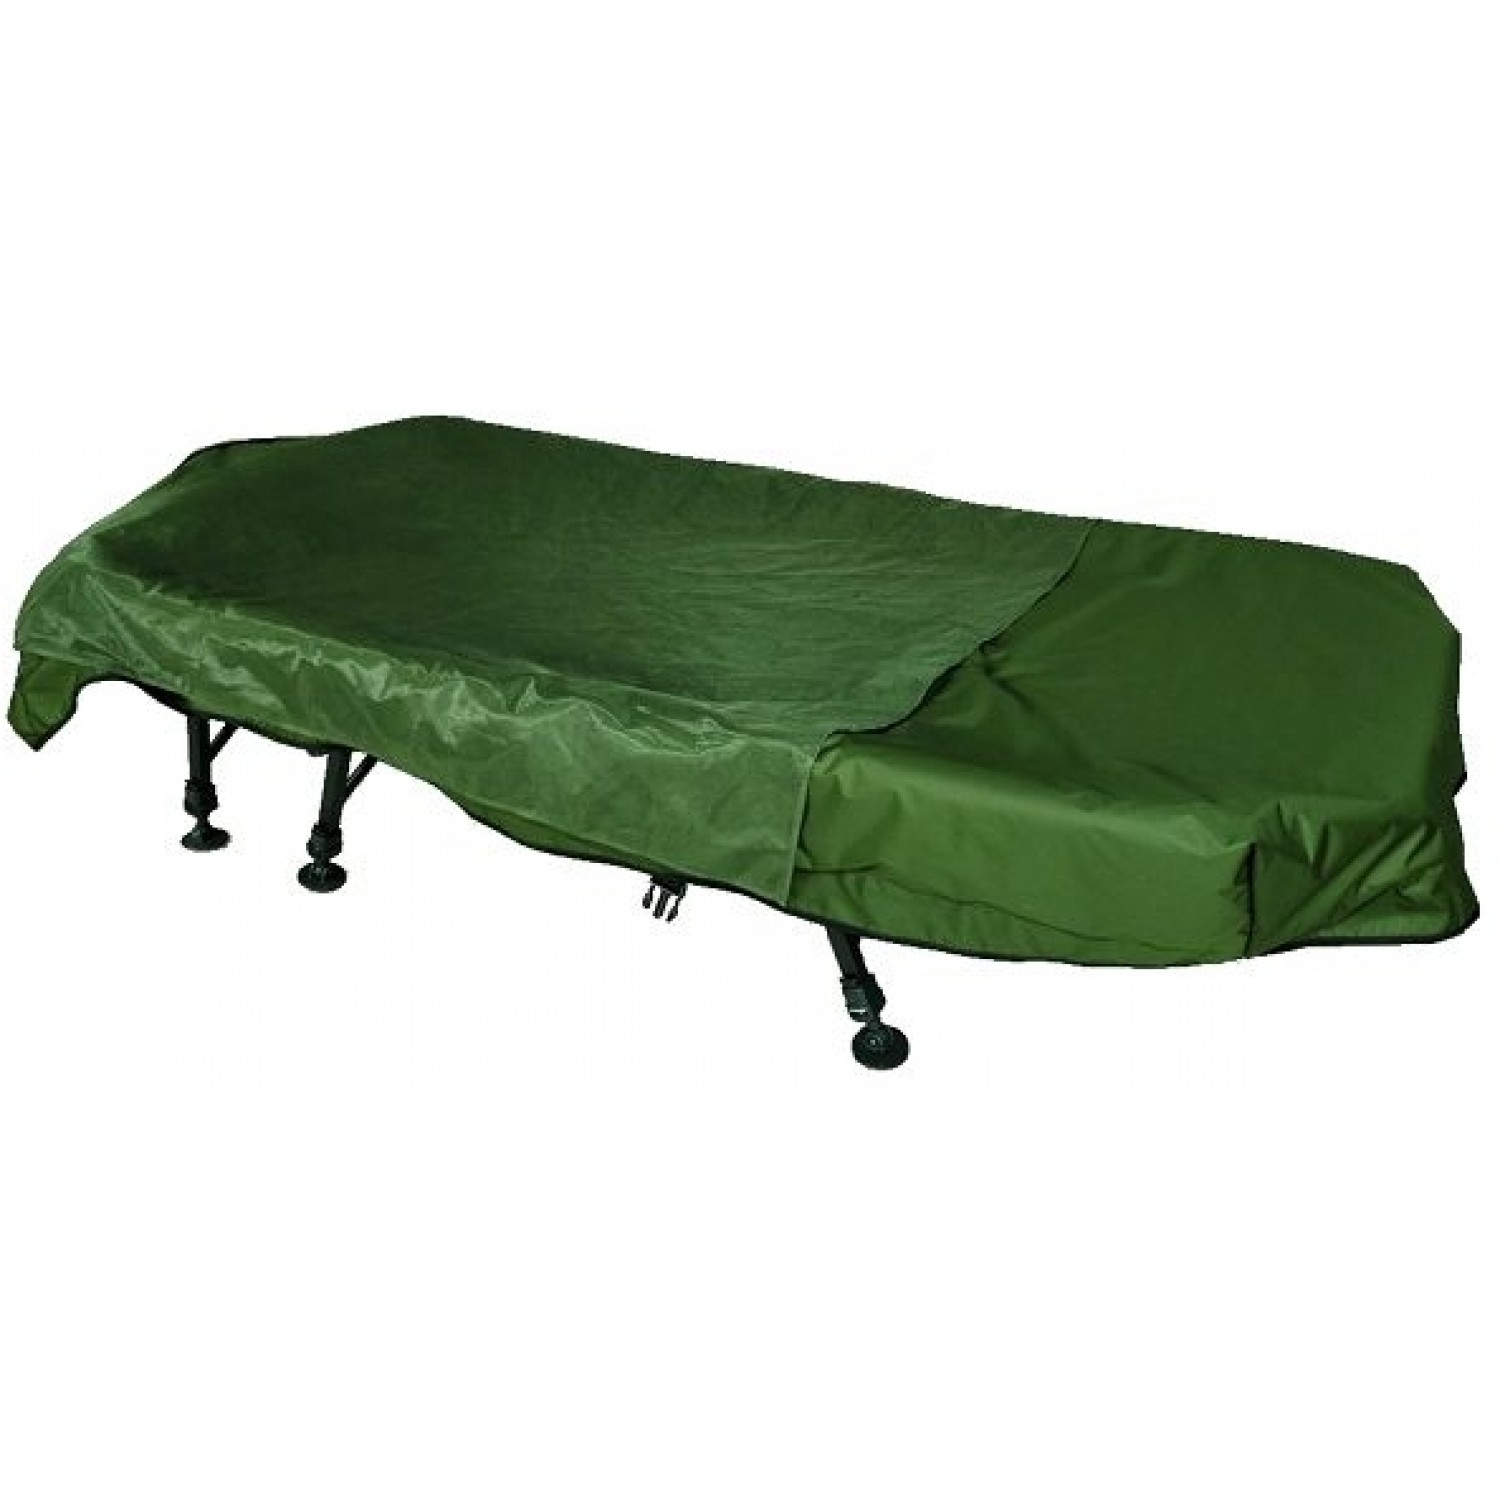 Ehmanns Pro-Zone DLX Bedchair Cover